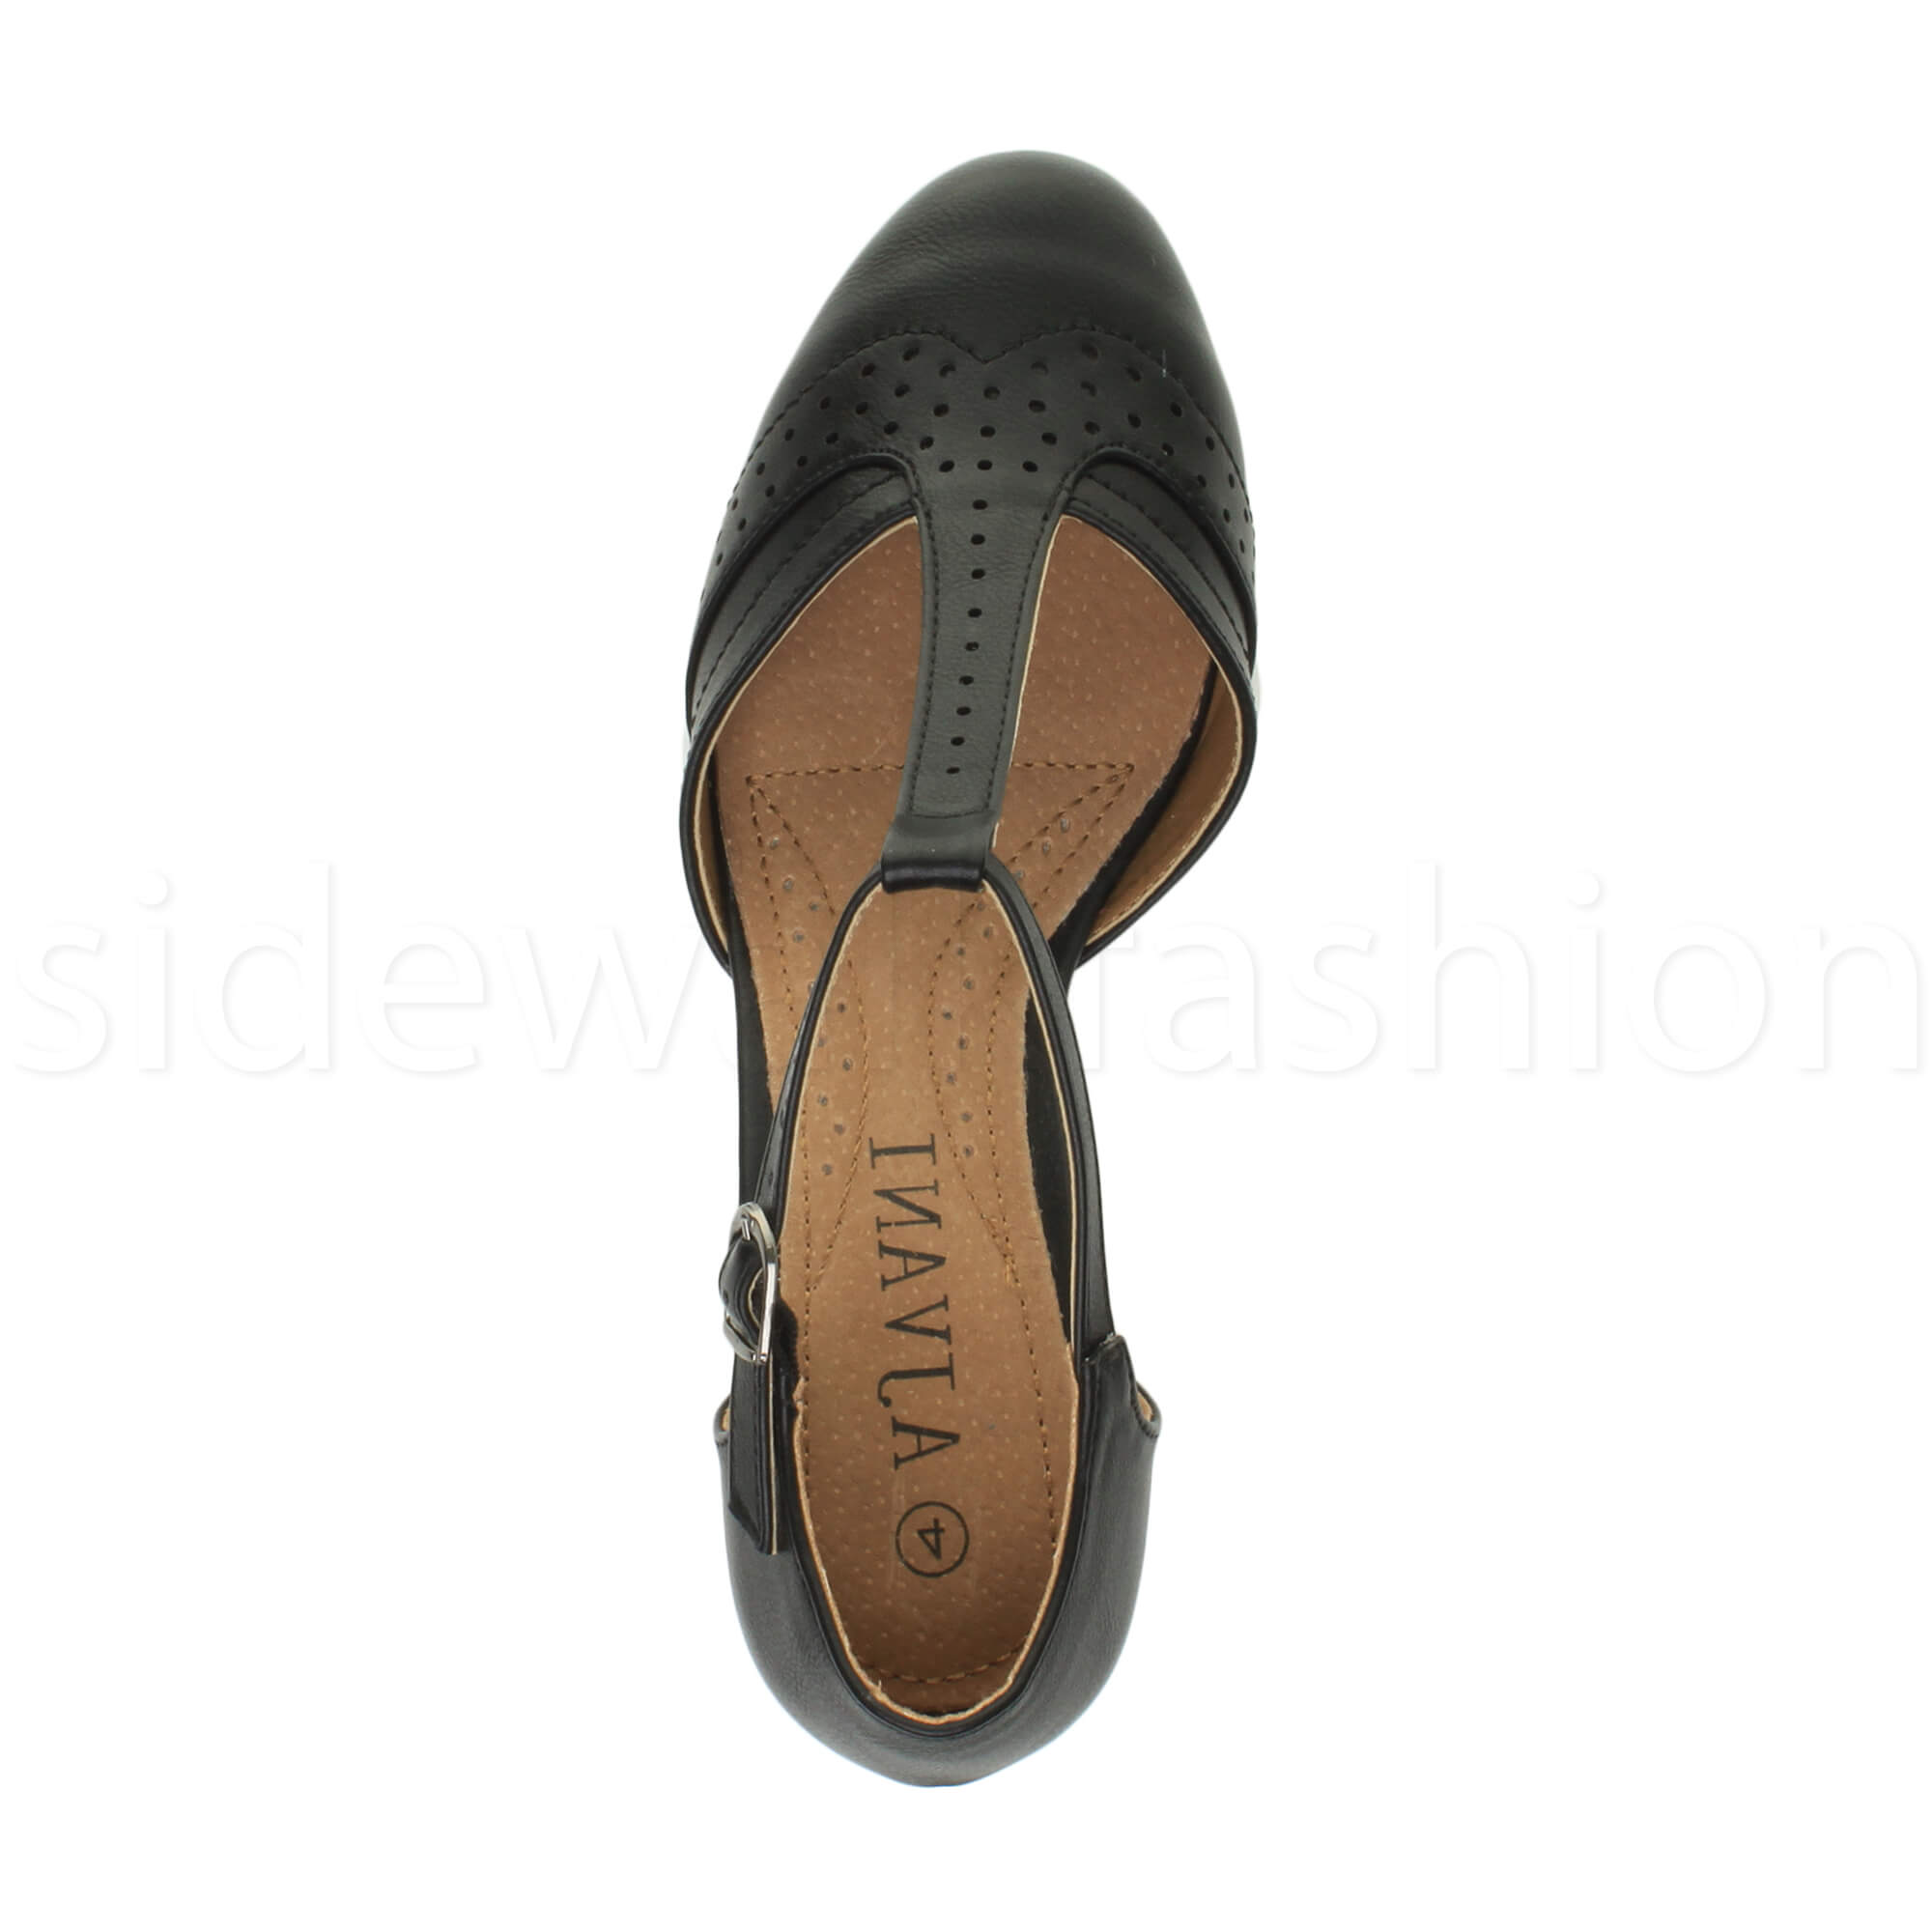 Womens-ladies-block-low-mid-heel-smart-work-Mary-Jane-T-bar-brogue-court-shoes thumbnail 6